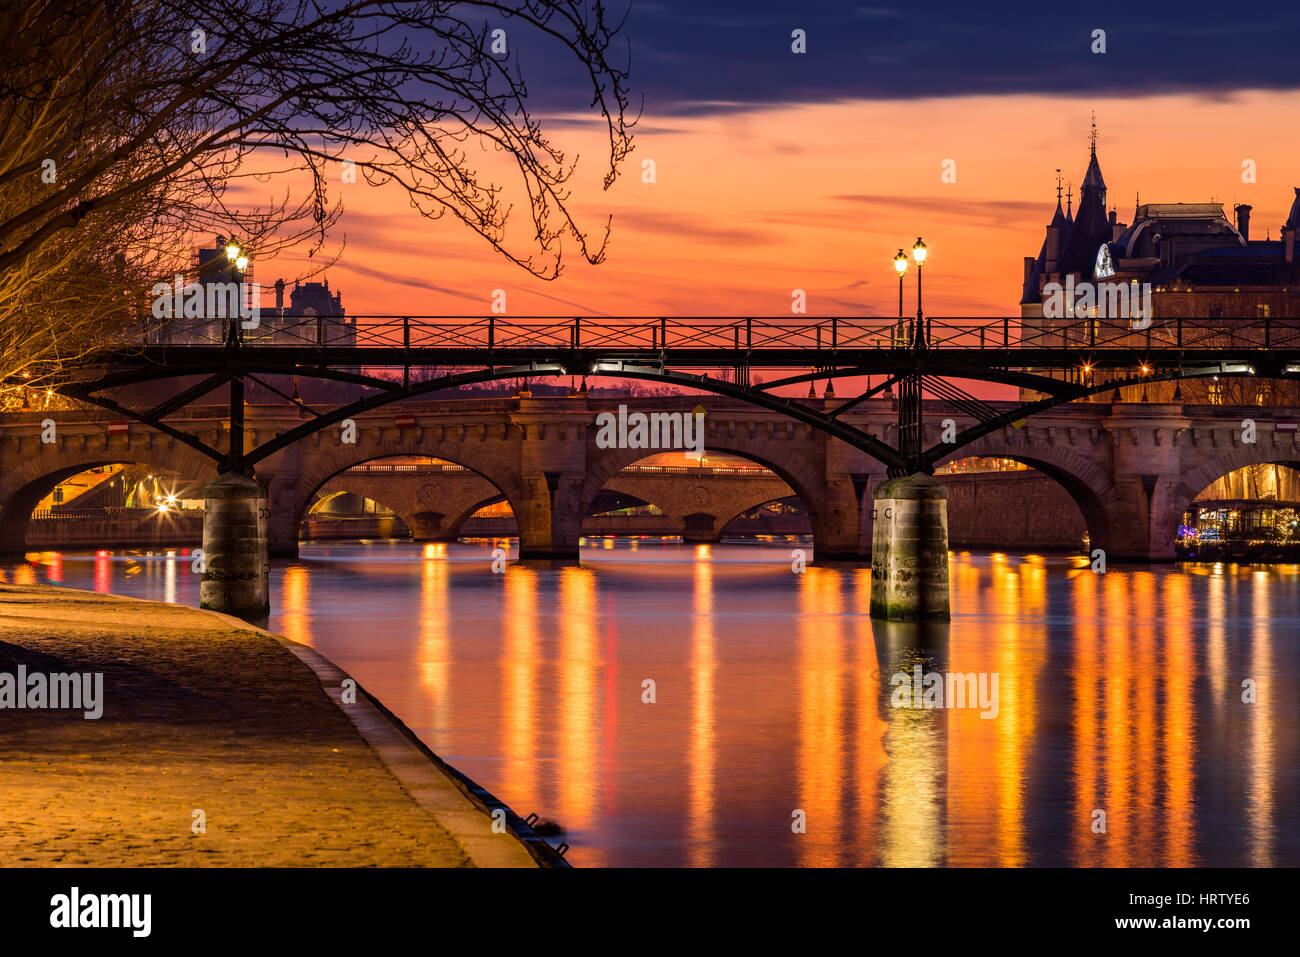 Sunrise on the Seine River, Pond des Arts and Pond Neuf in the 1st Arrondissement of Paris (Ile de la Cite), France - Stock Image